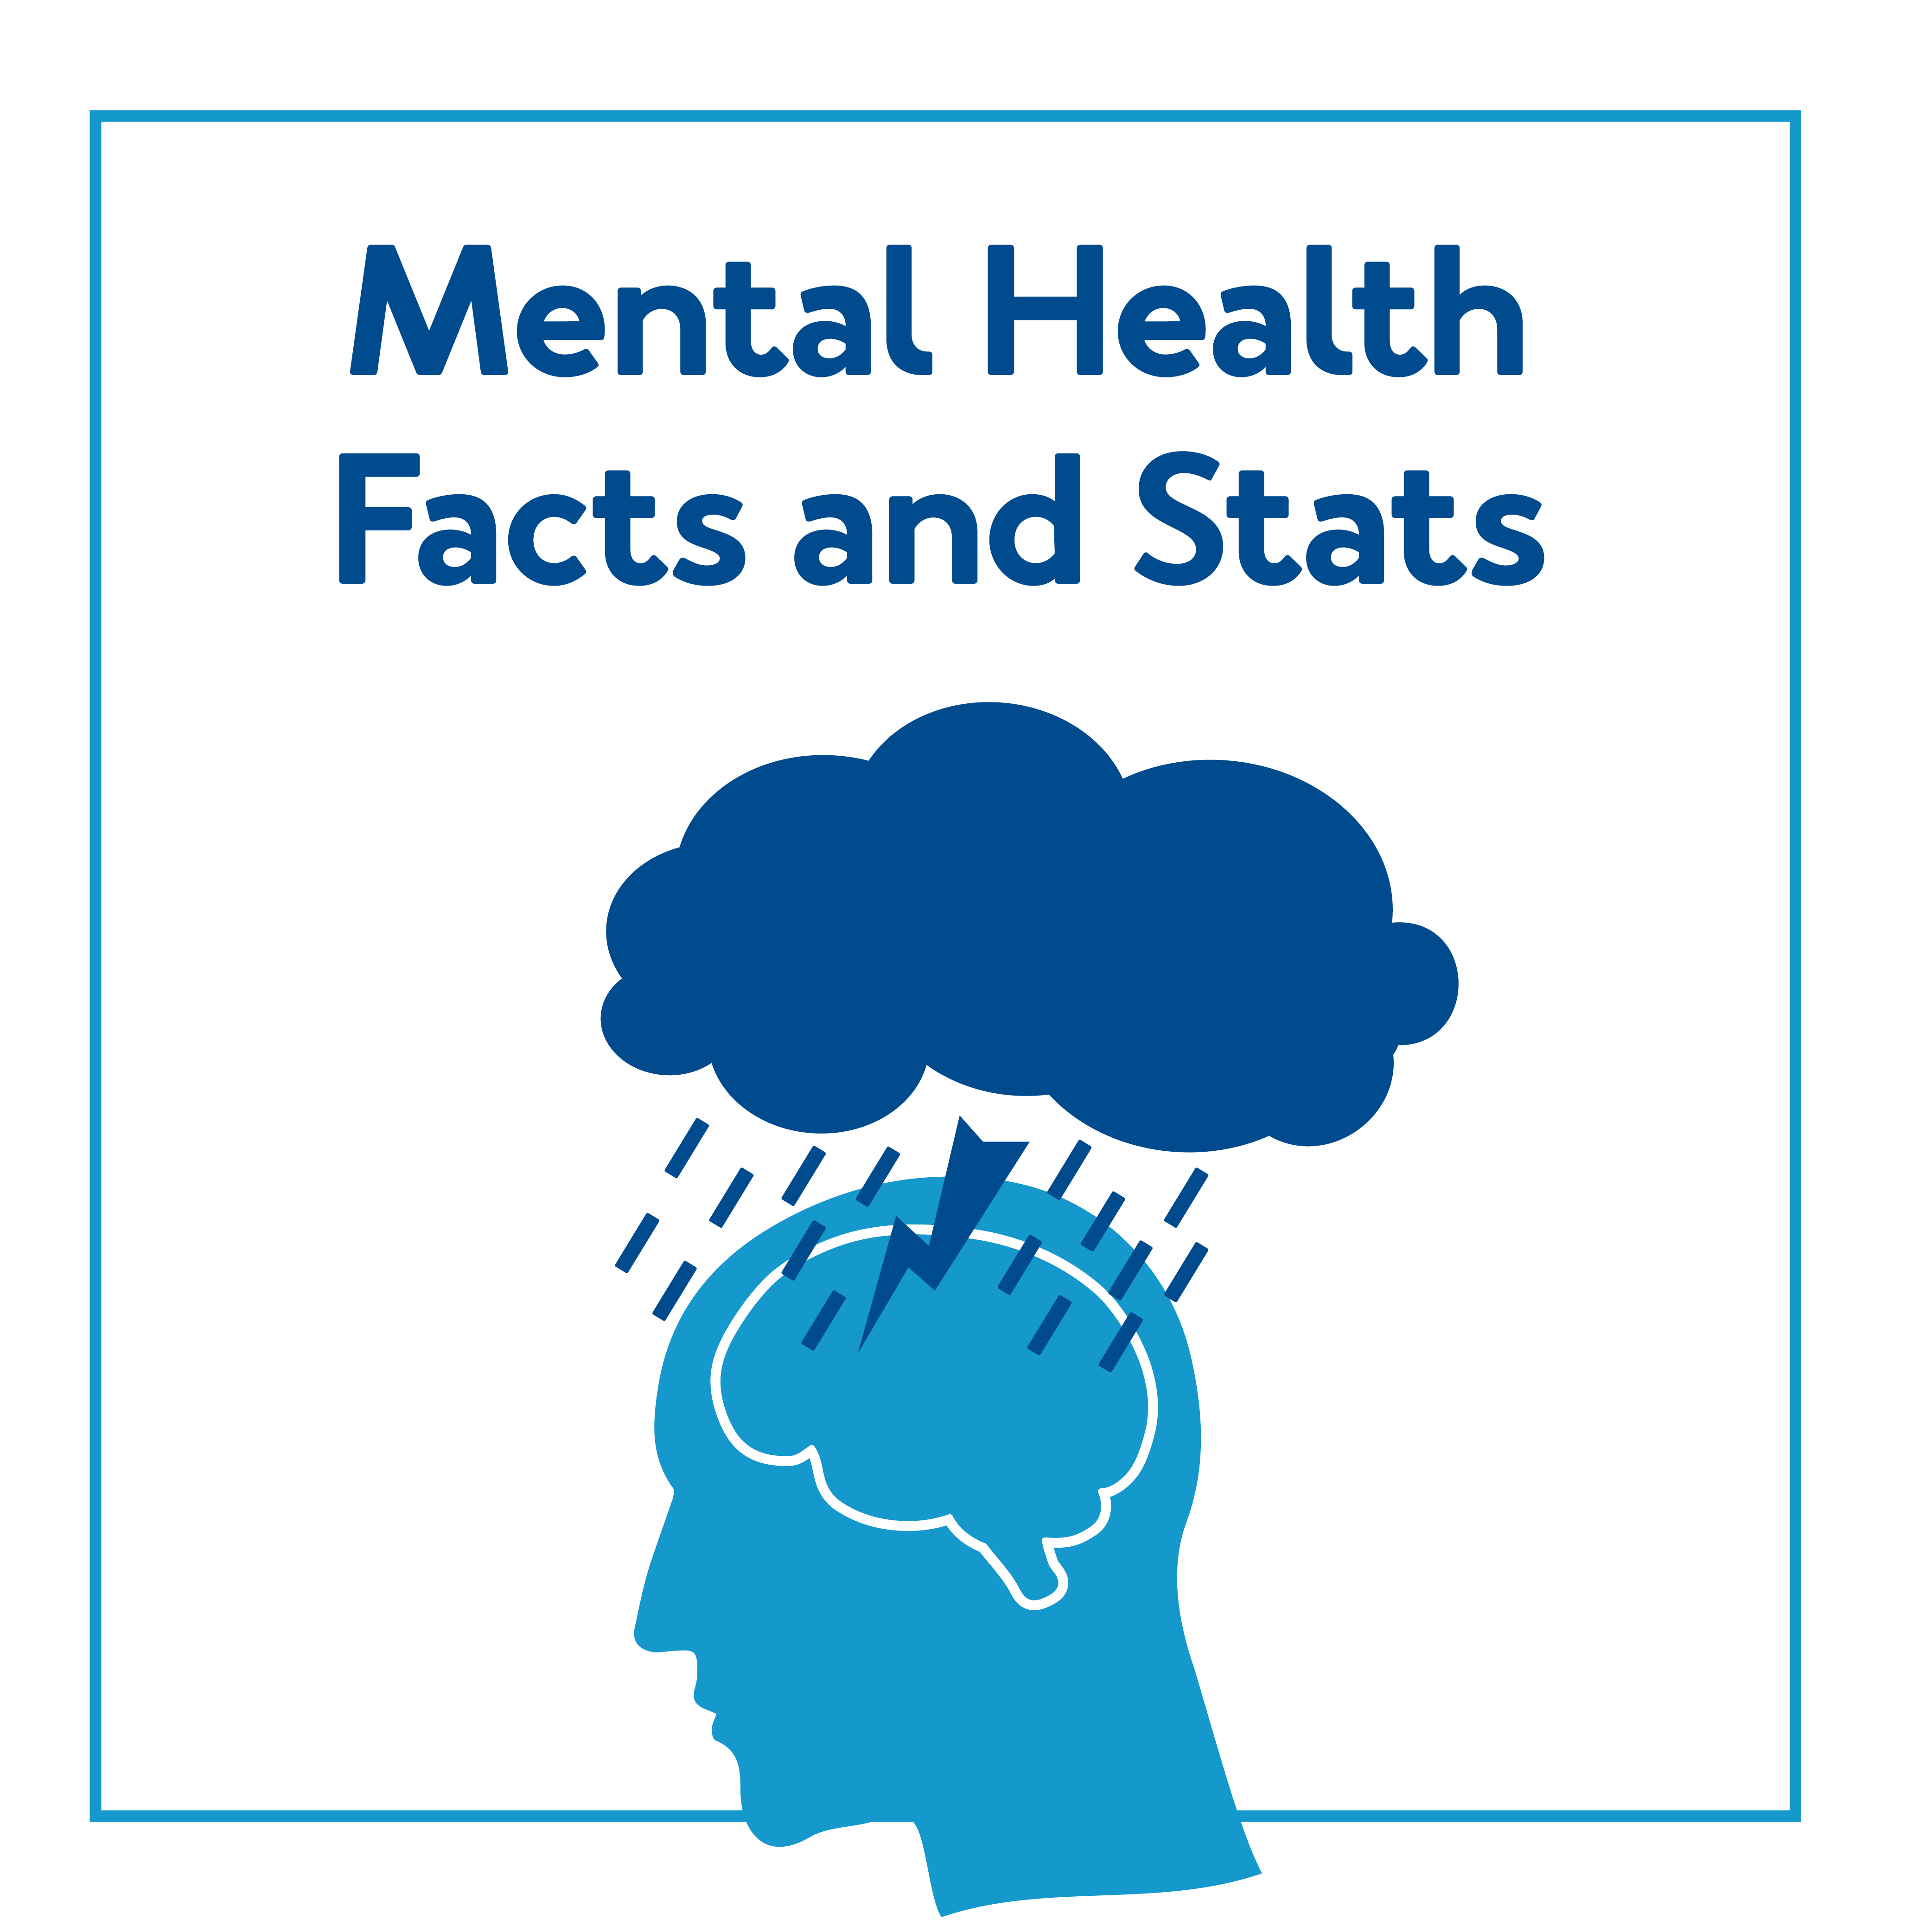 Mental Health Facts and Statistics